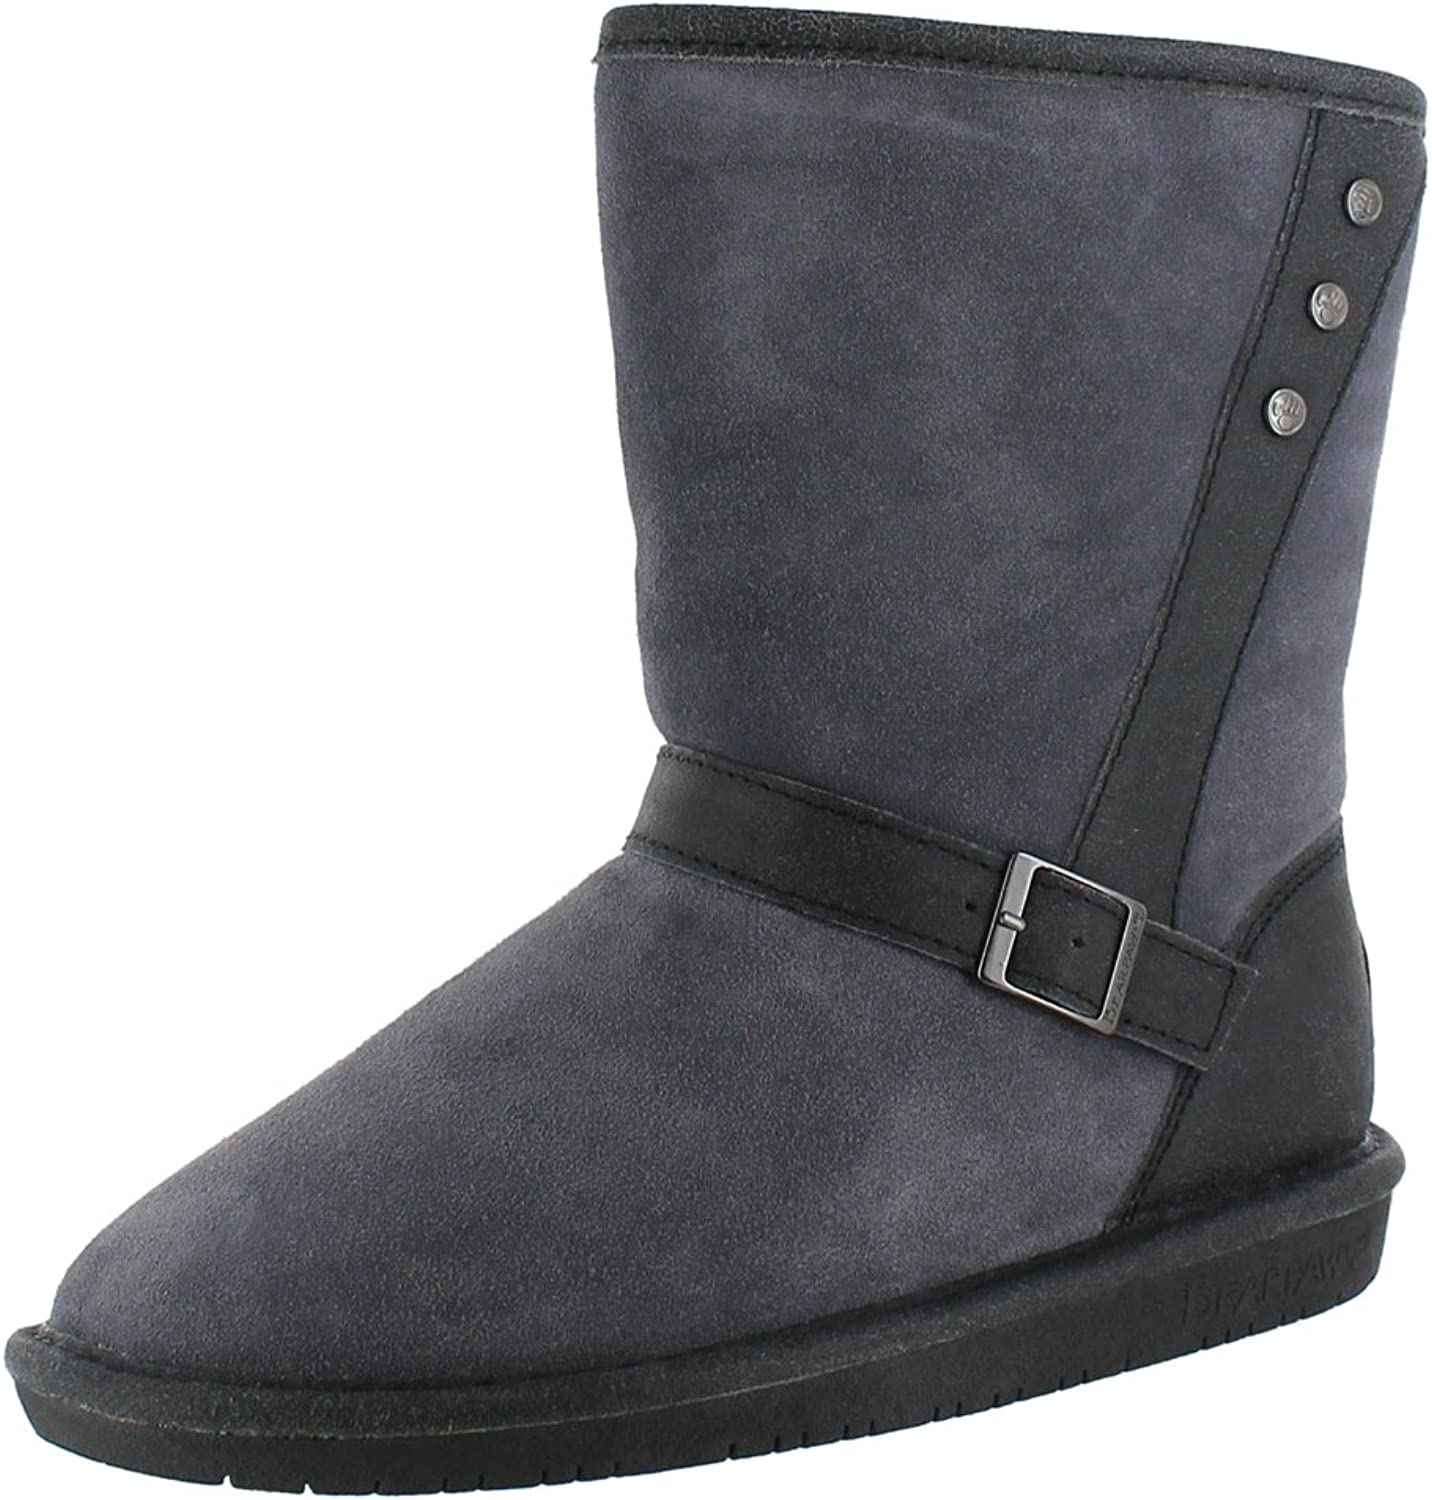 Bearpaw Women's Katniss Snow Boot